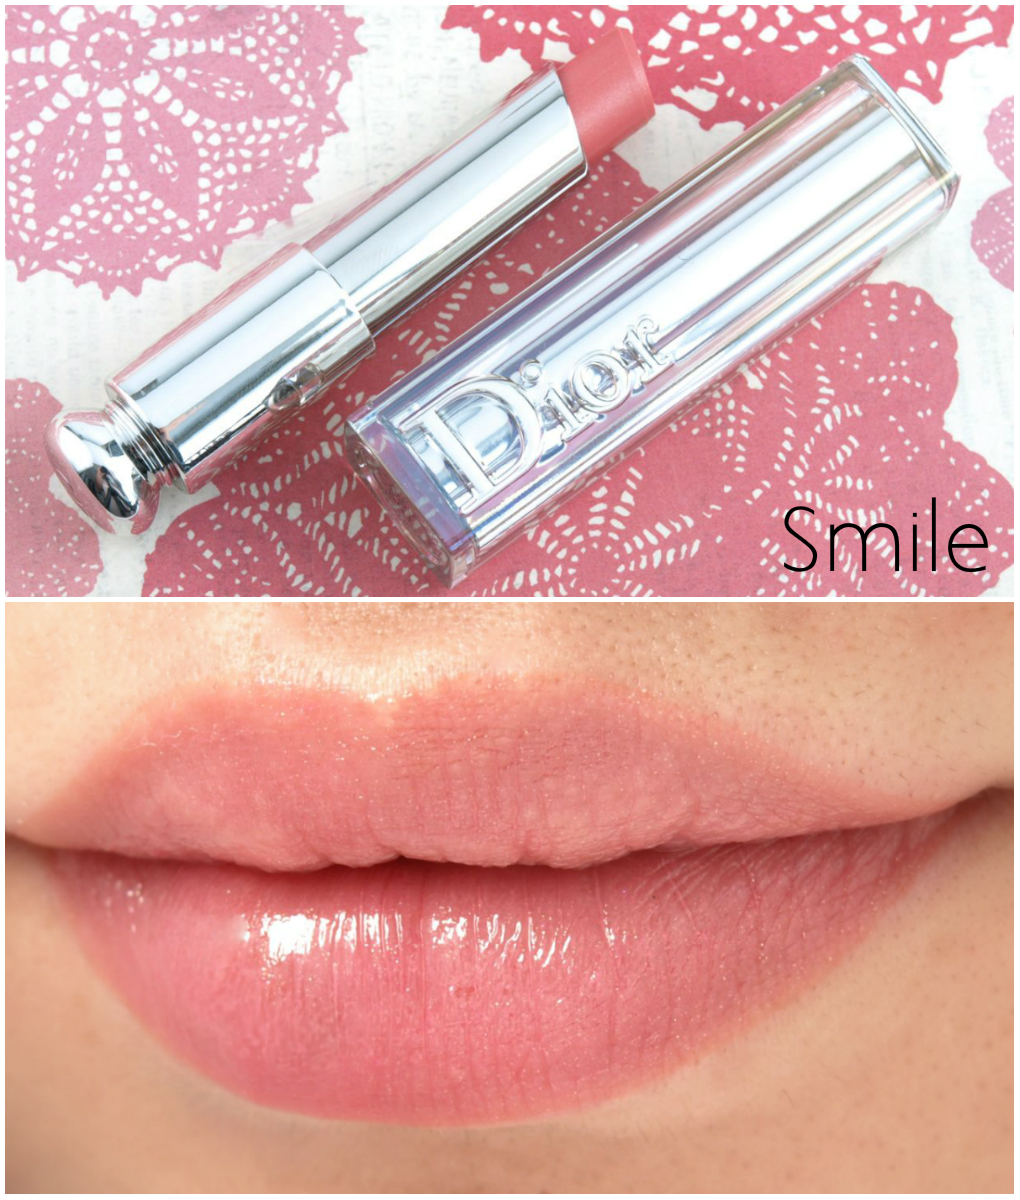 "NEW Dior Addict Lipstick Collection 2015 in ""Smile ..."